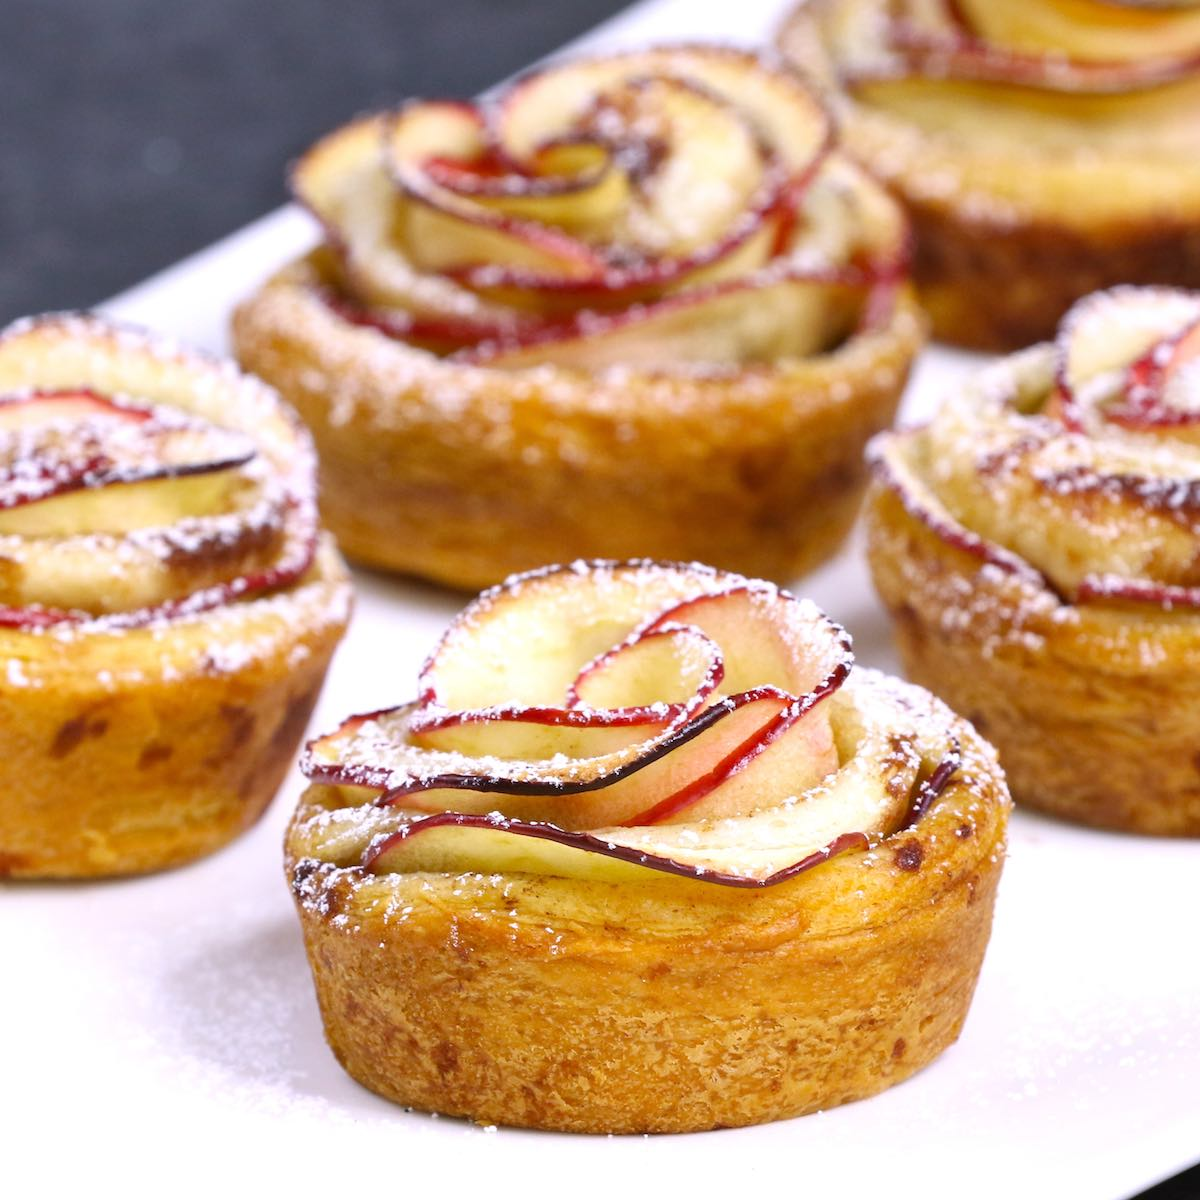 Apple rose tarts on a serving platter dusted with powdered sugar